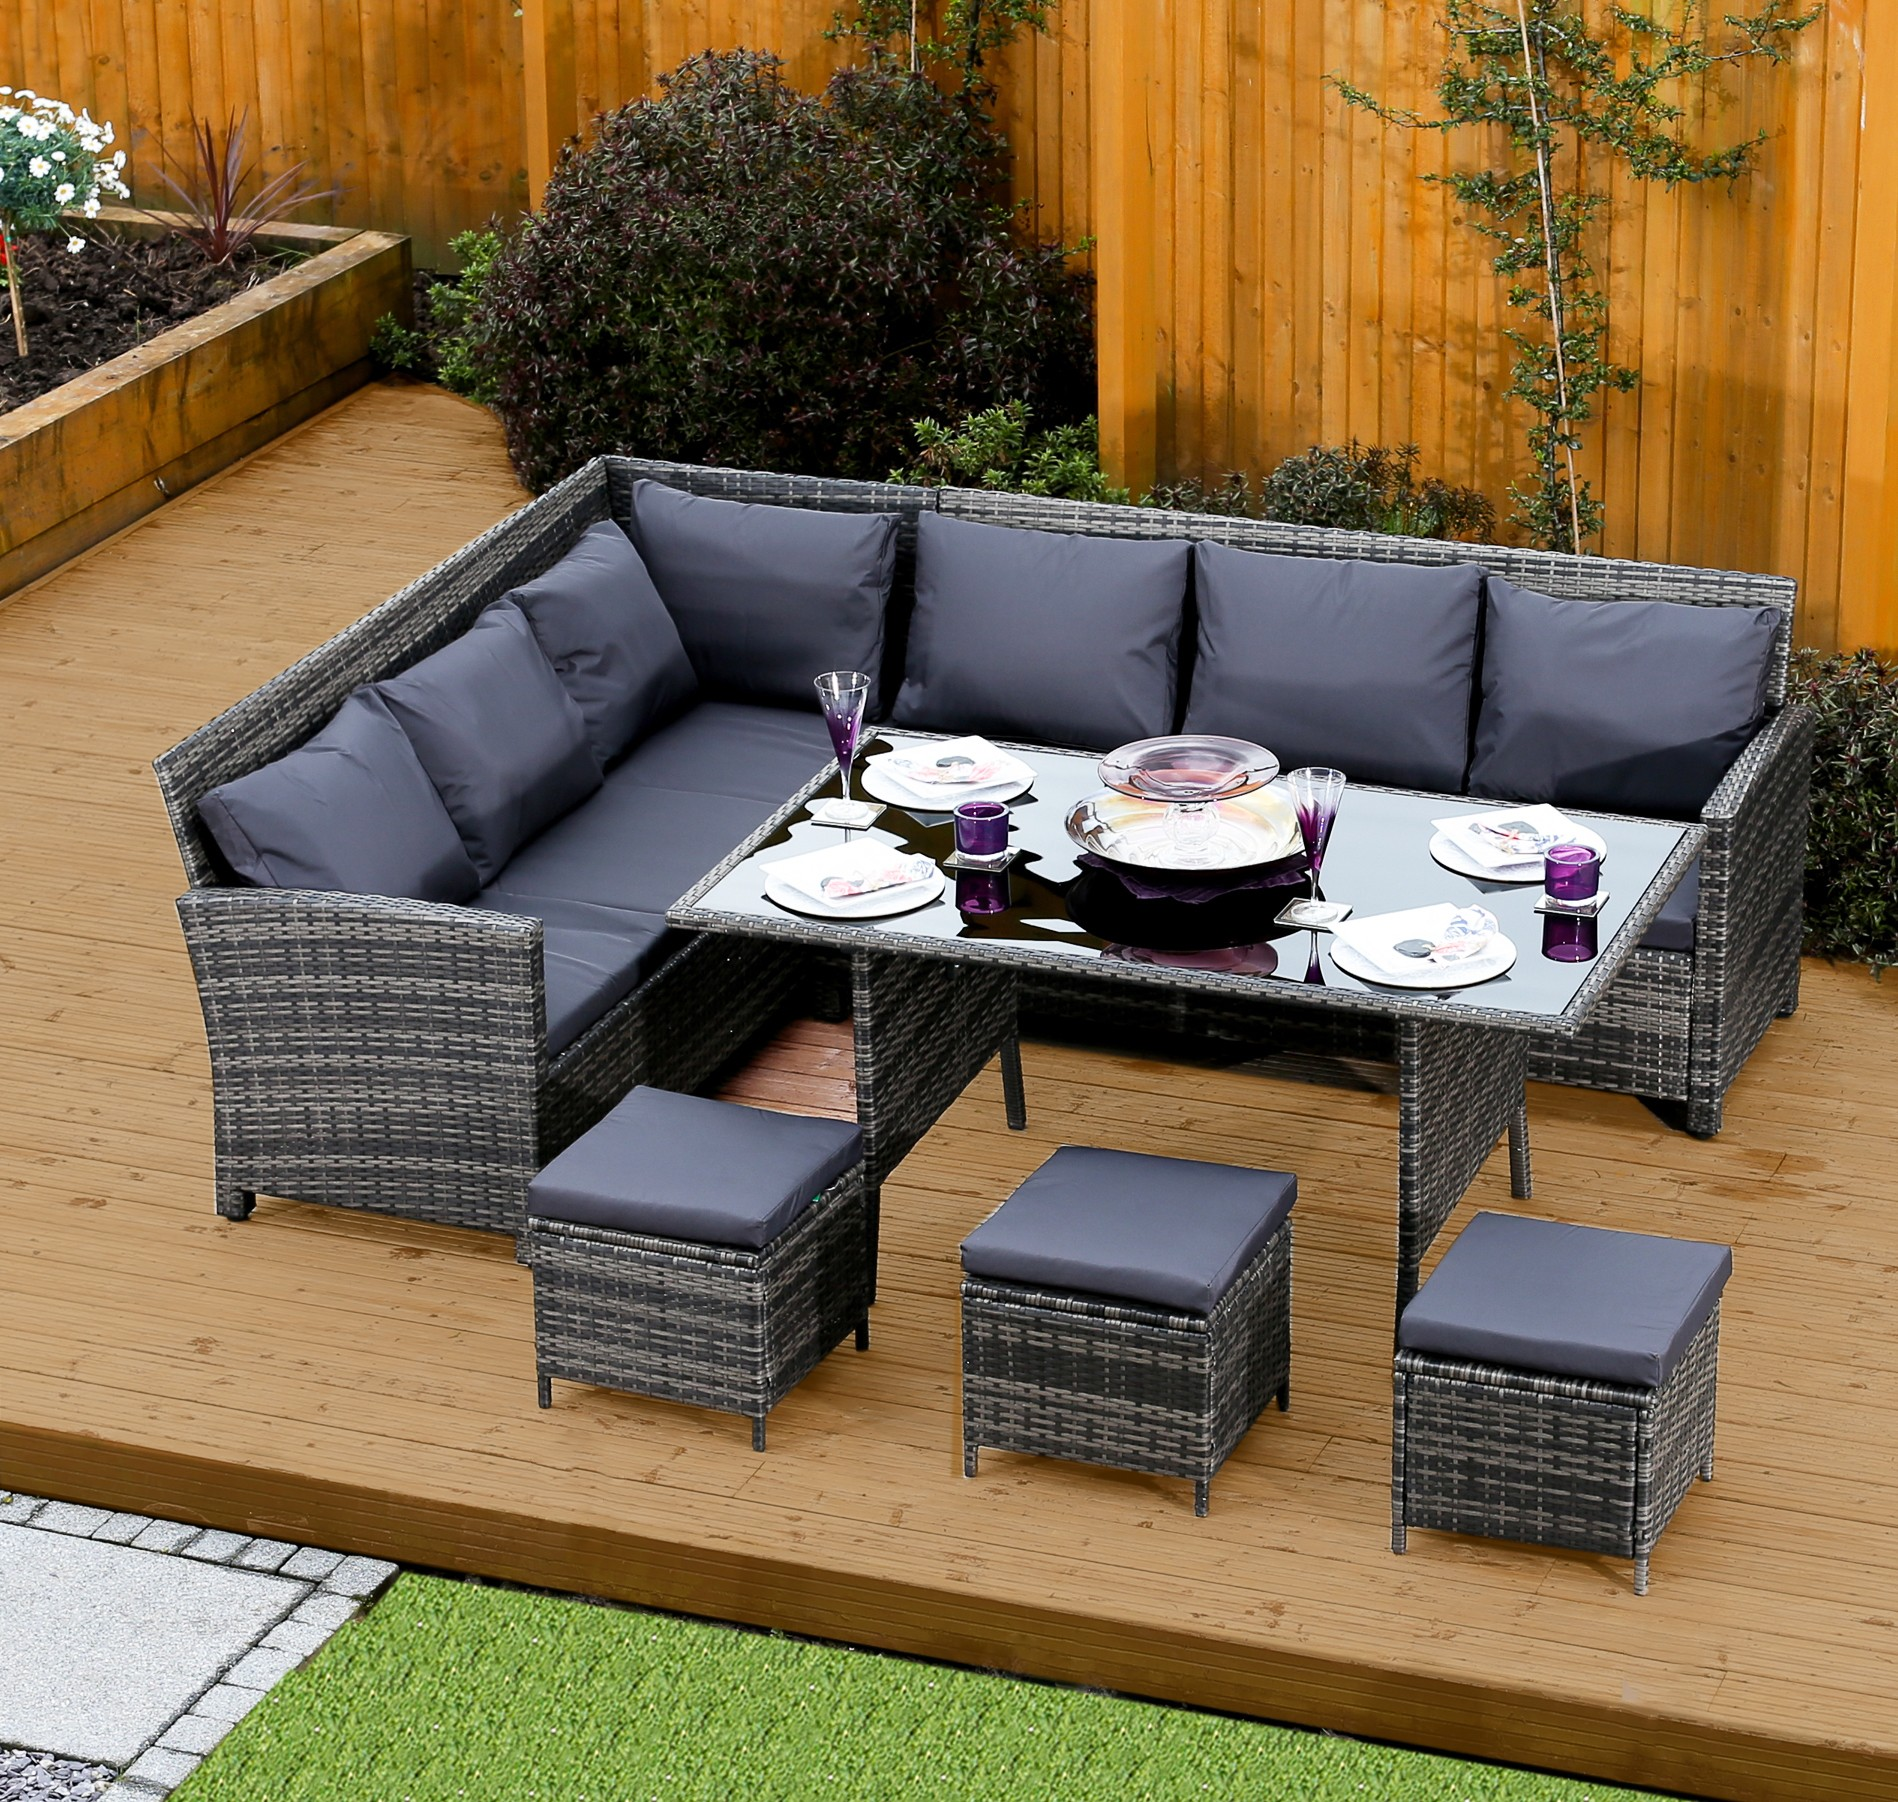 9 Seater Rattan Corner Garden Sofa U0026 Dining Table Set In Dark Mixed Grey  With Dark